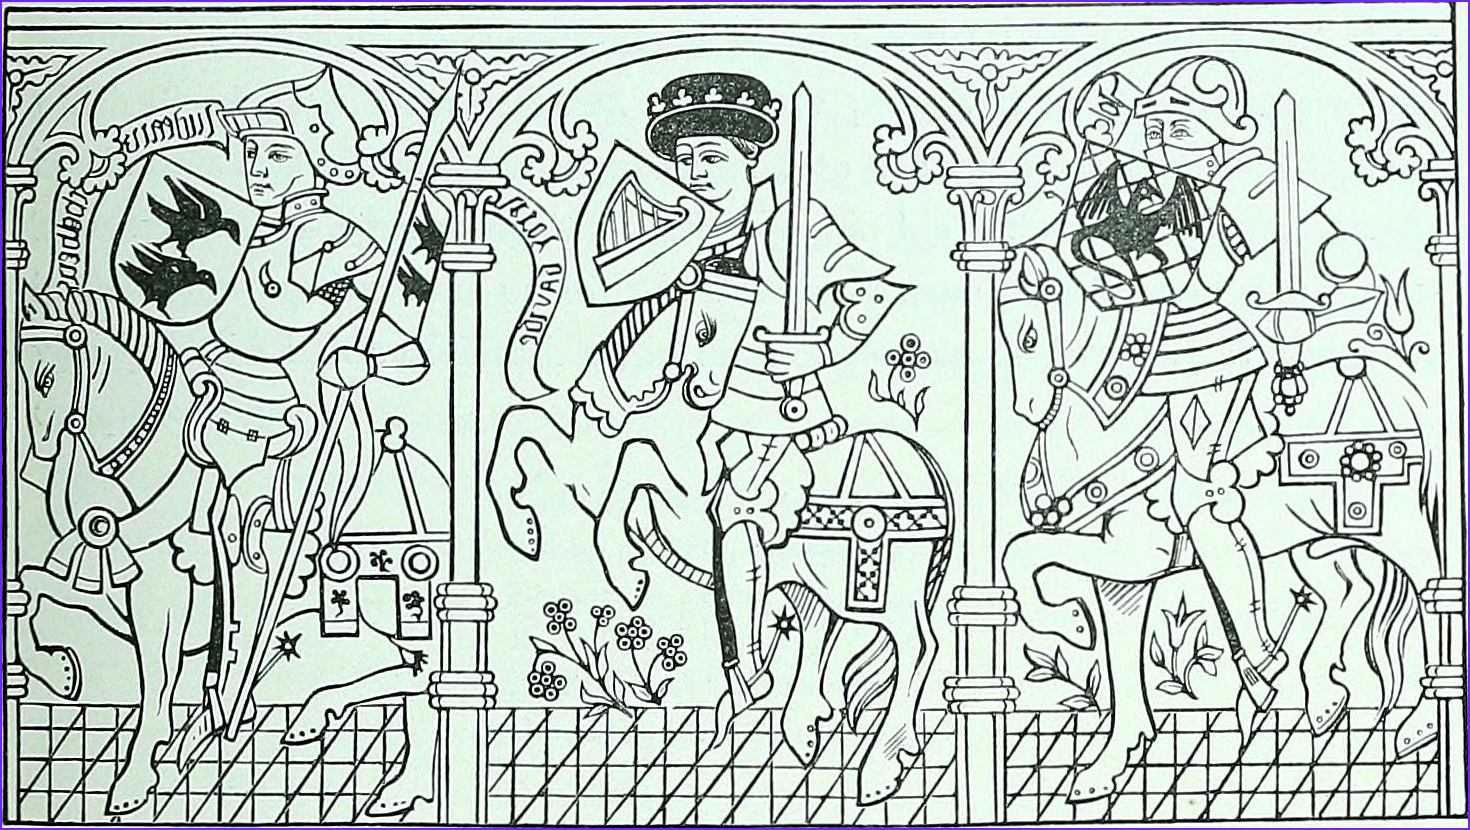 Medieval Coloring Book Awesome Photos Coloring Pages About the Middle Ages Me Valists